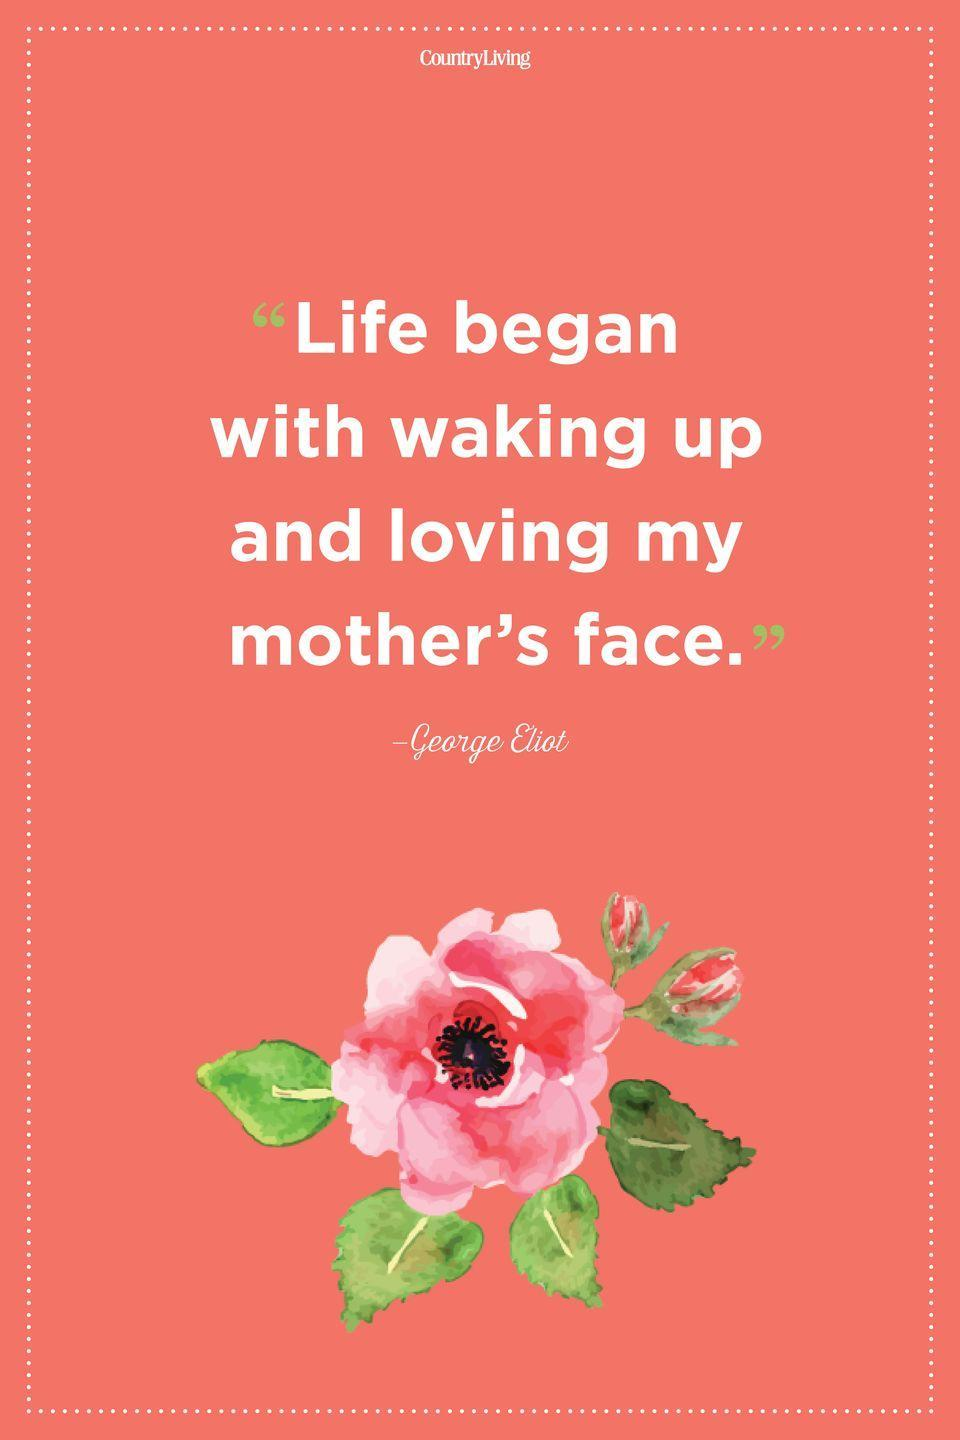 "<p>""Life began with waking up and loving my mother's face.""</p>"